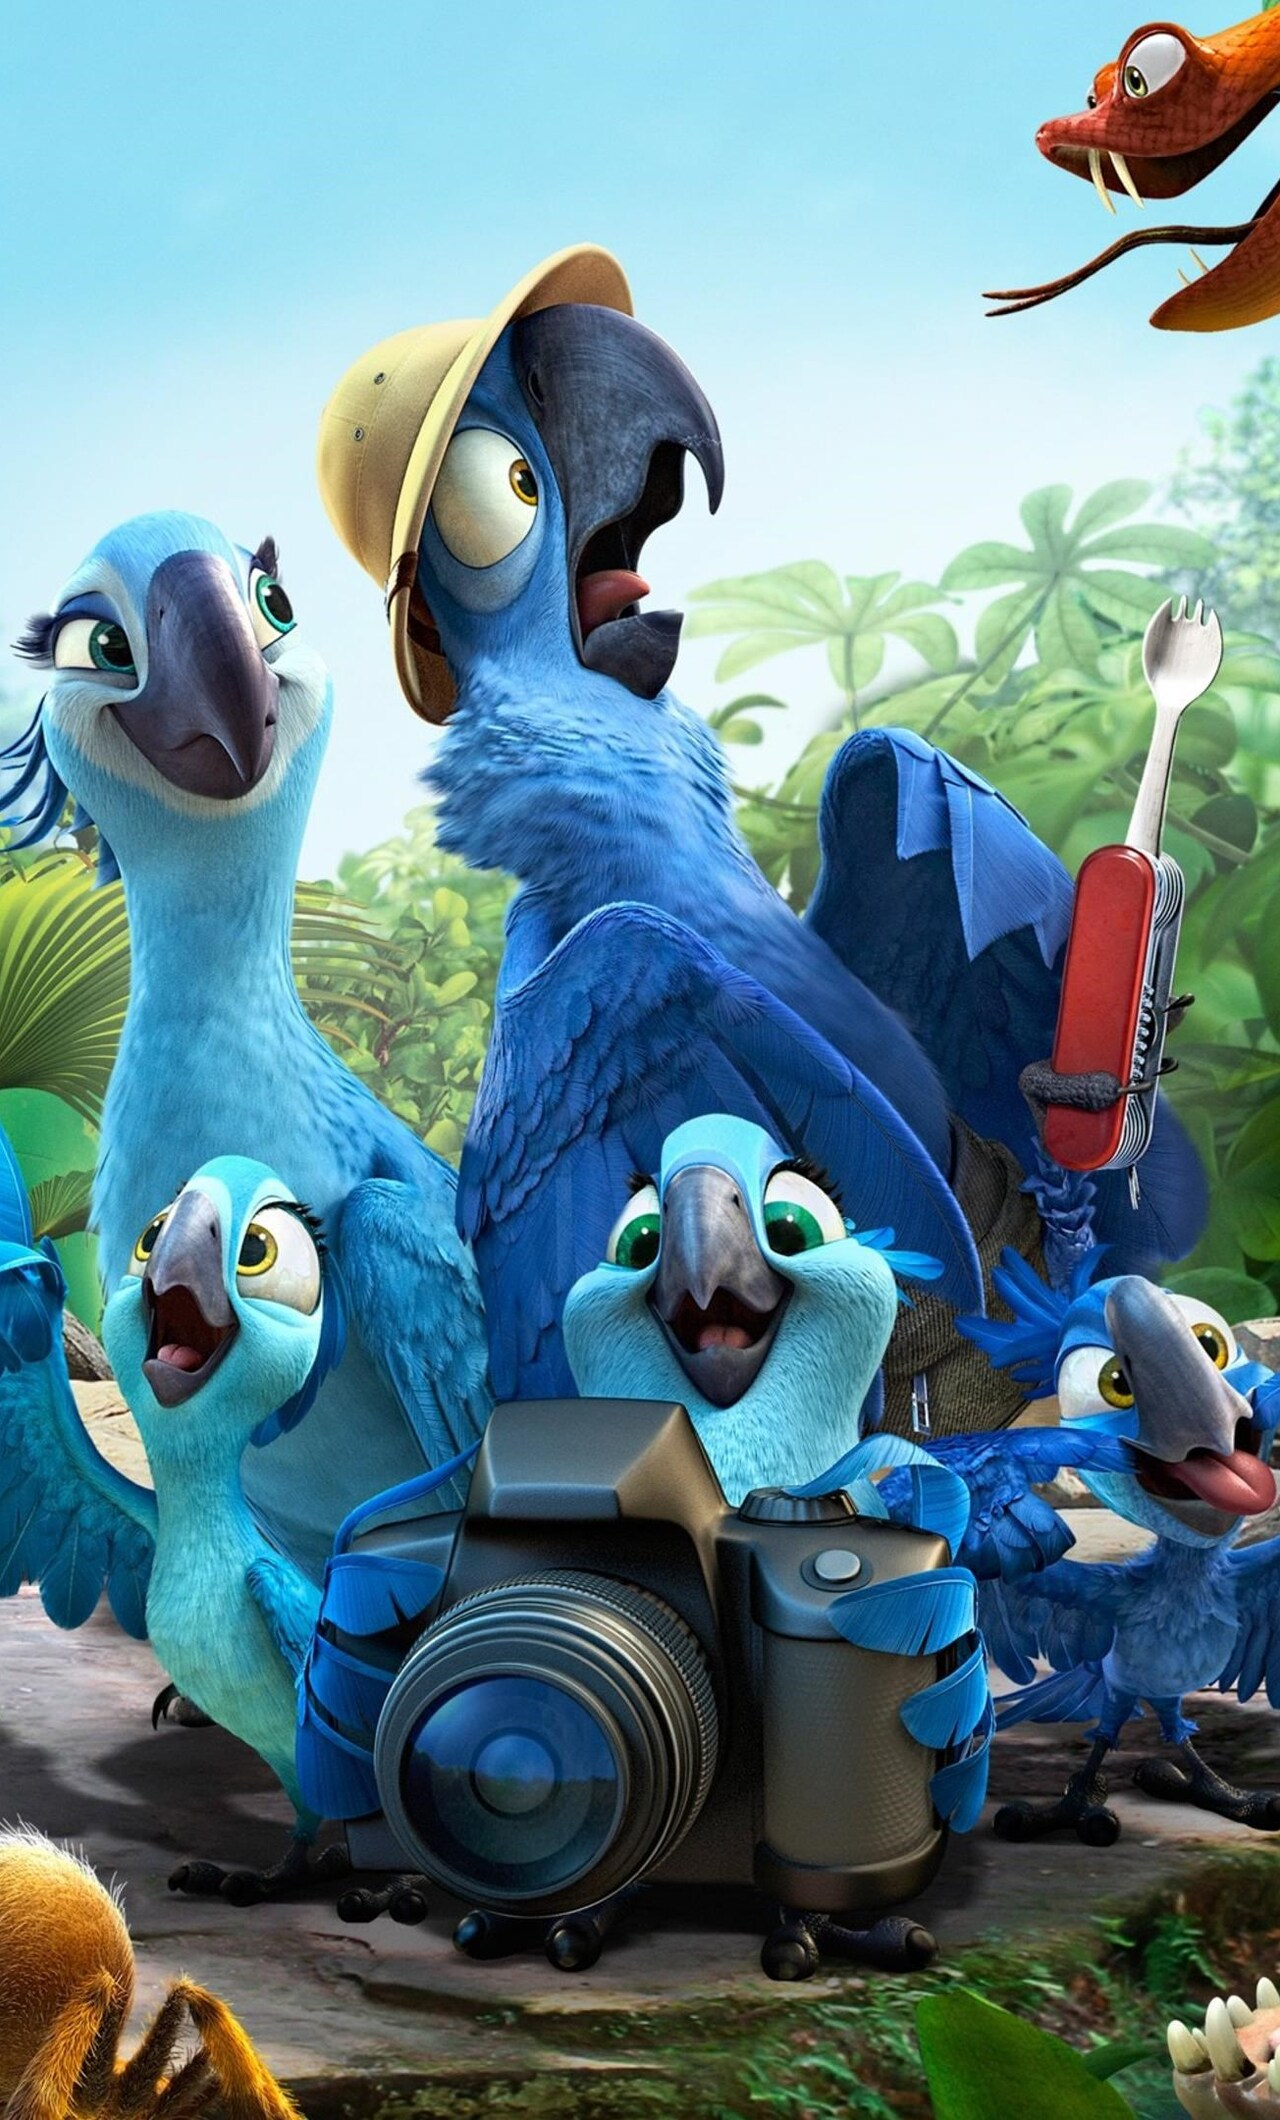 1280x2120 rio 2 movie hd iphone 6 hd 4k wallpapers images rio 2 movie hdg voltagebd Images